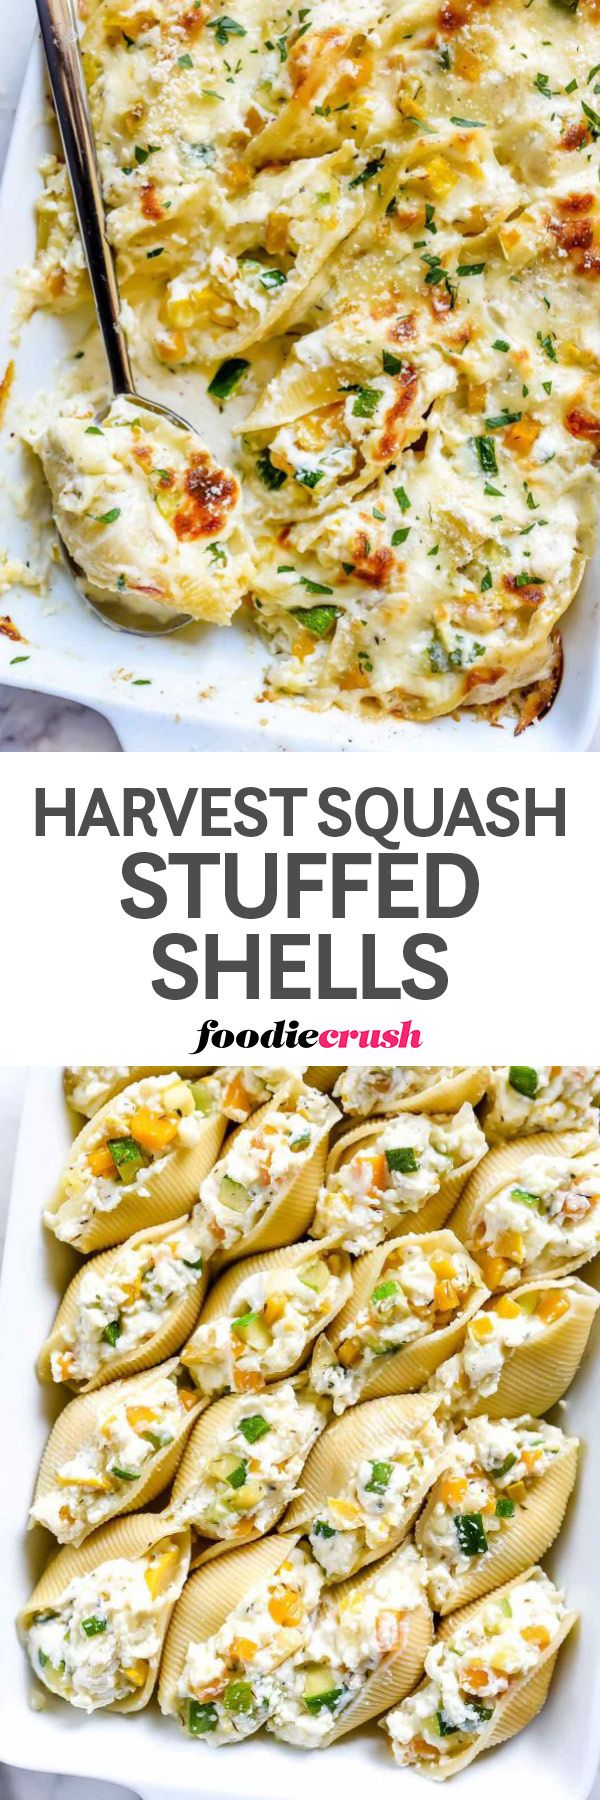 These stuffed shells with zucchini, butternut, and yellow squash baked in a creamy white alfredo sauce couldn't be easier to prep and are even easier to crave | foodiecrush.com #pasta #recipes #baked